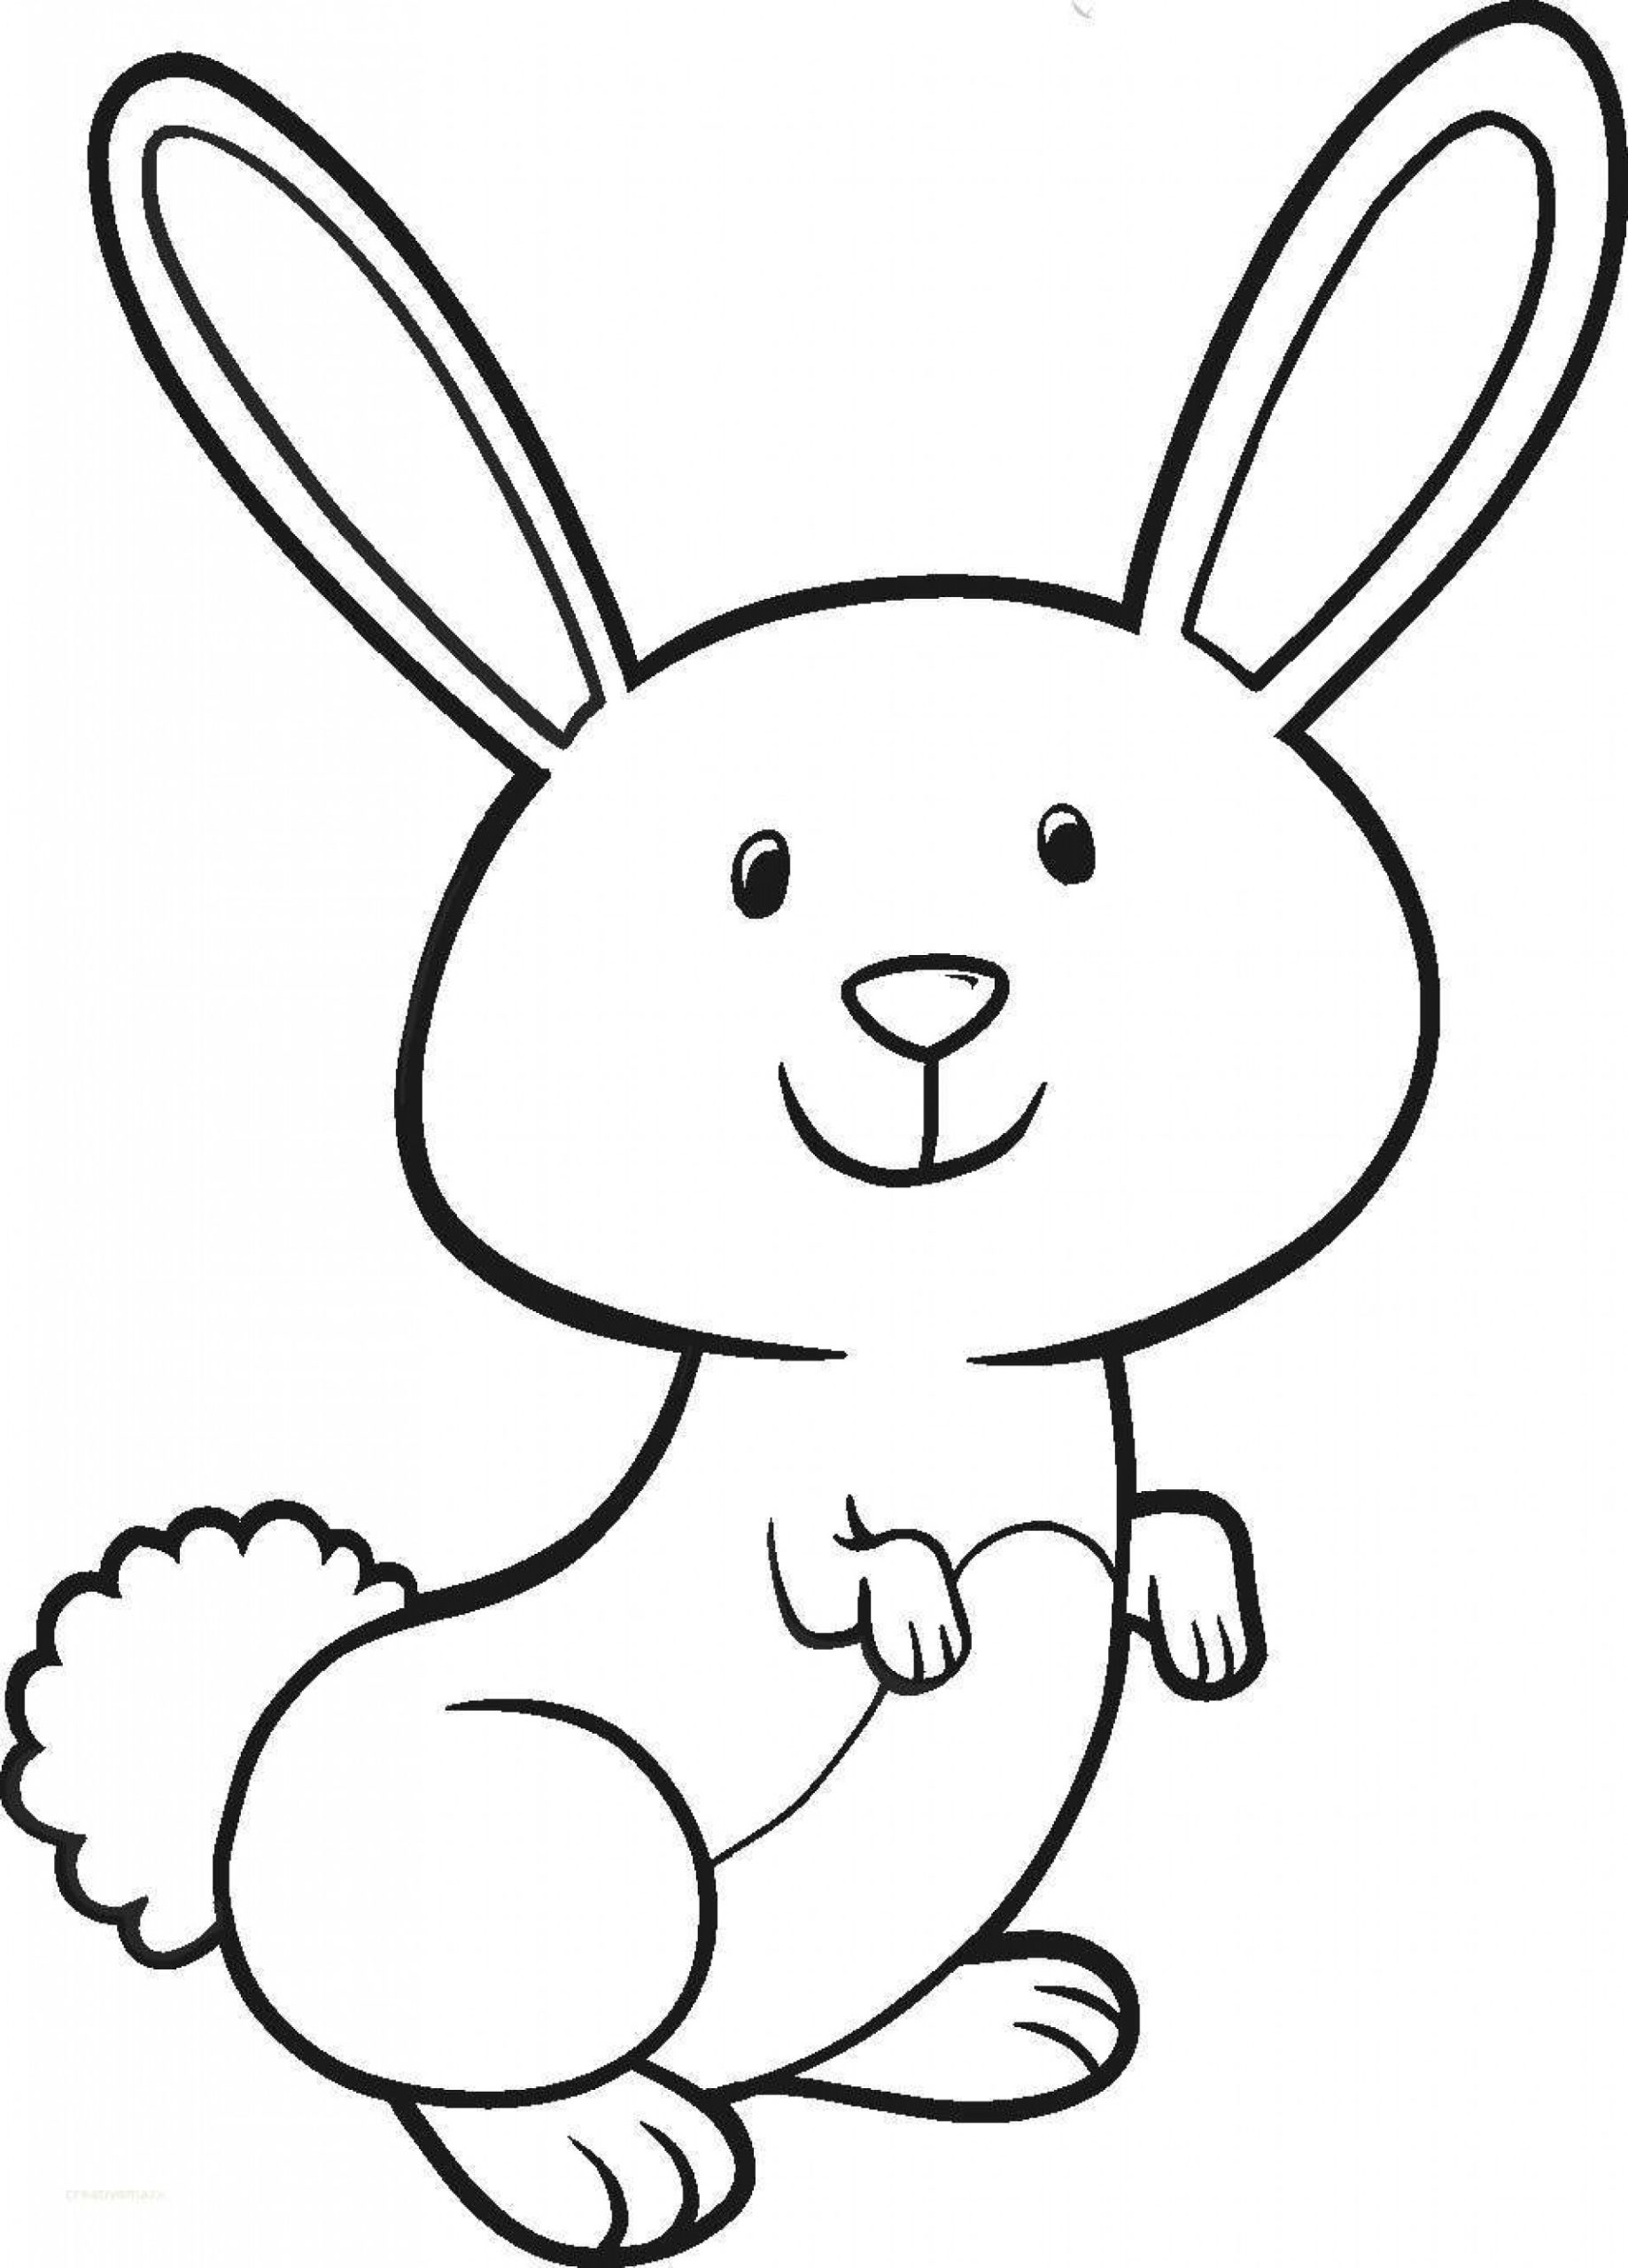 coloring cute pictures cute bunny colouring image coloring pictures cute